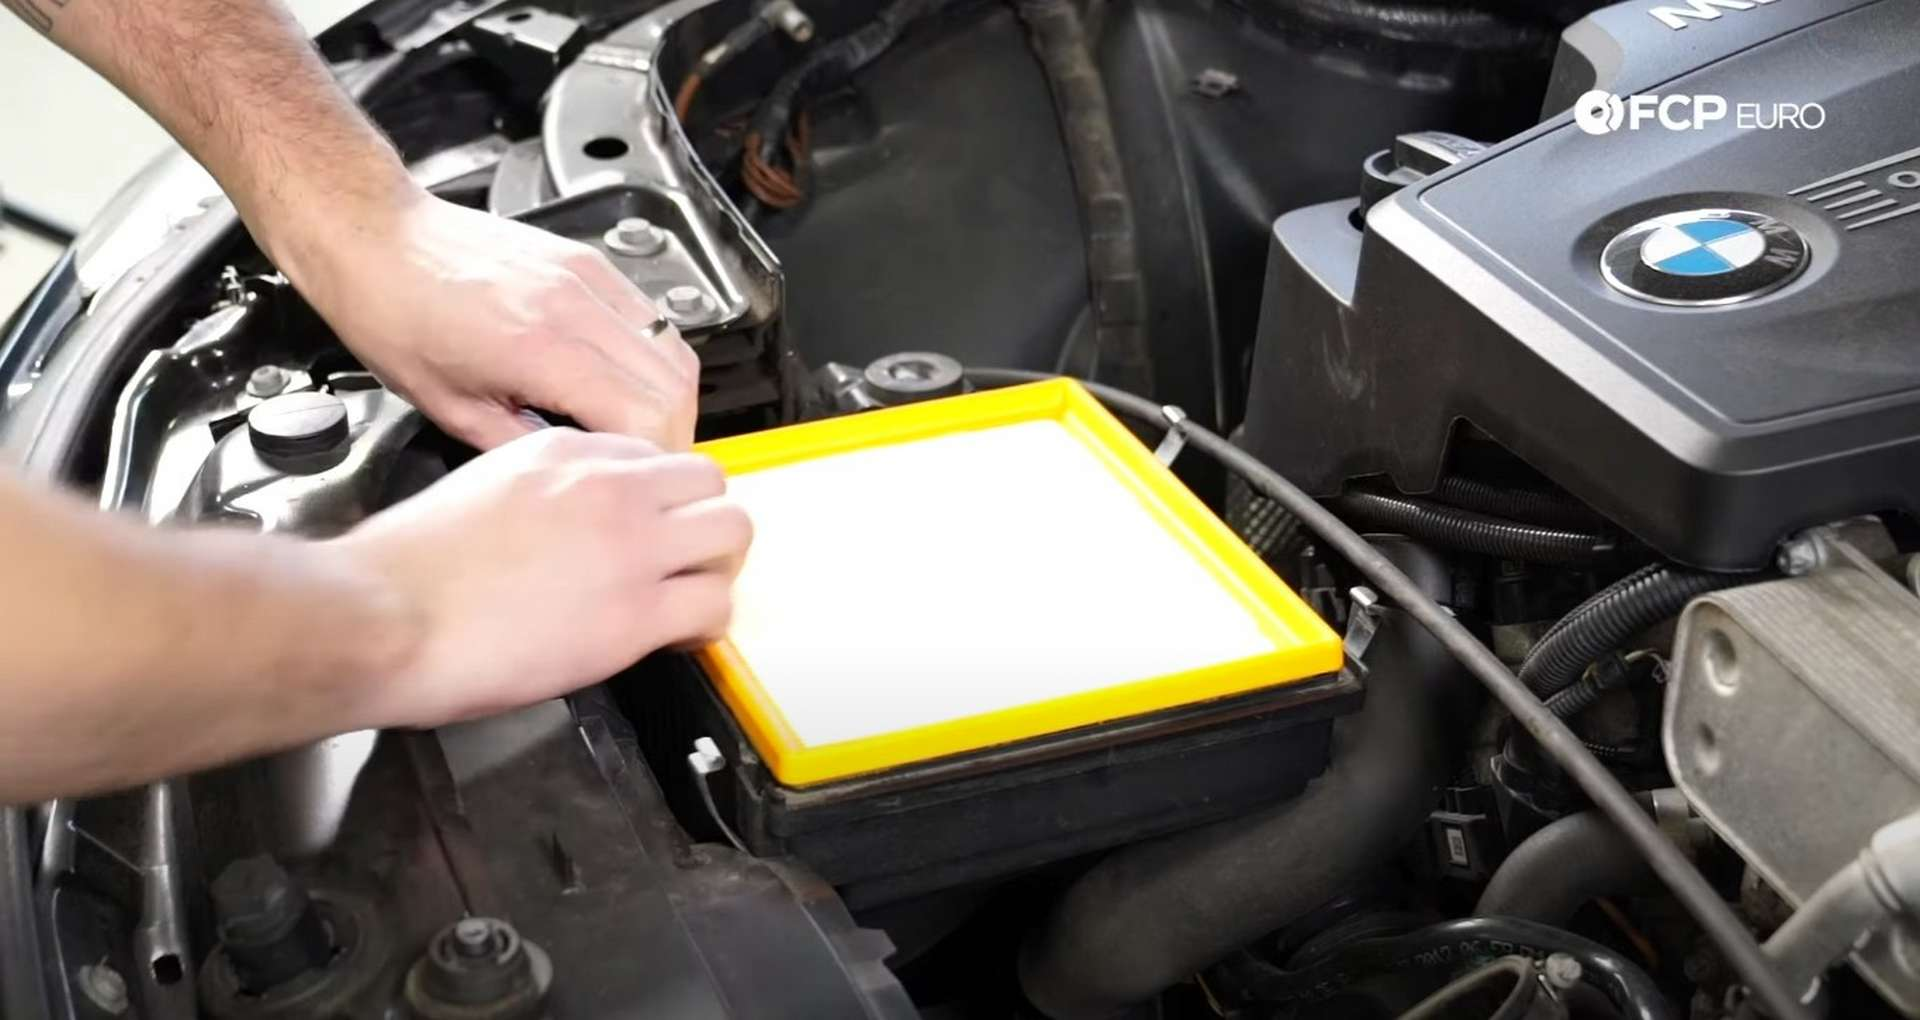 DIY BMW F30 Air Filter Replacement fitting the new filter